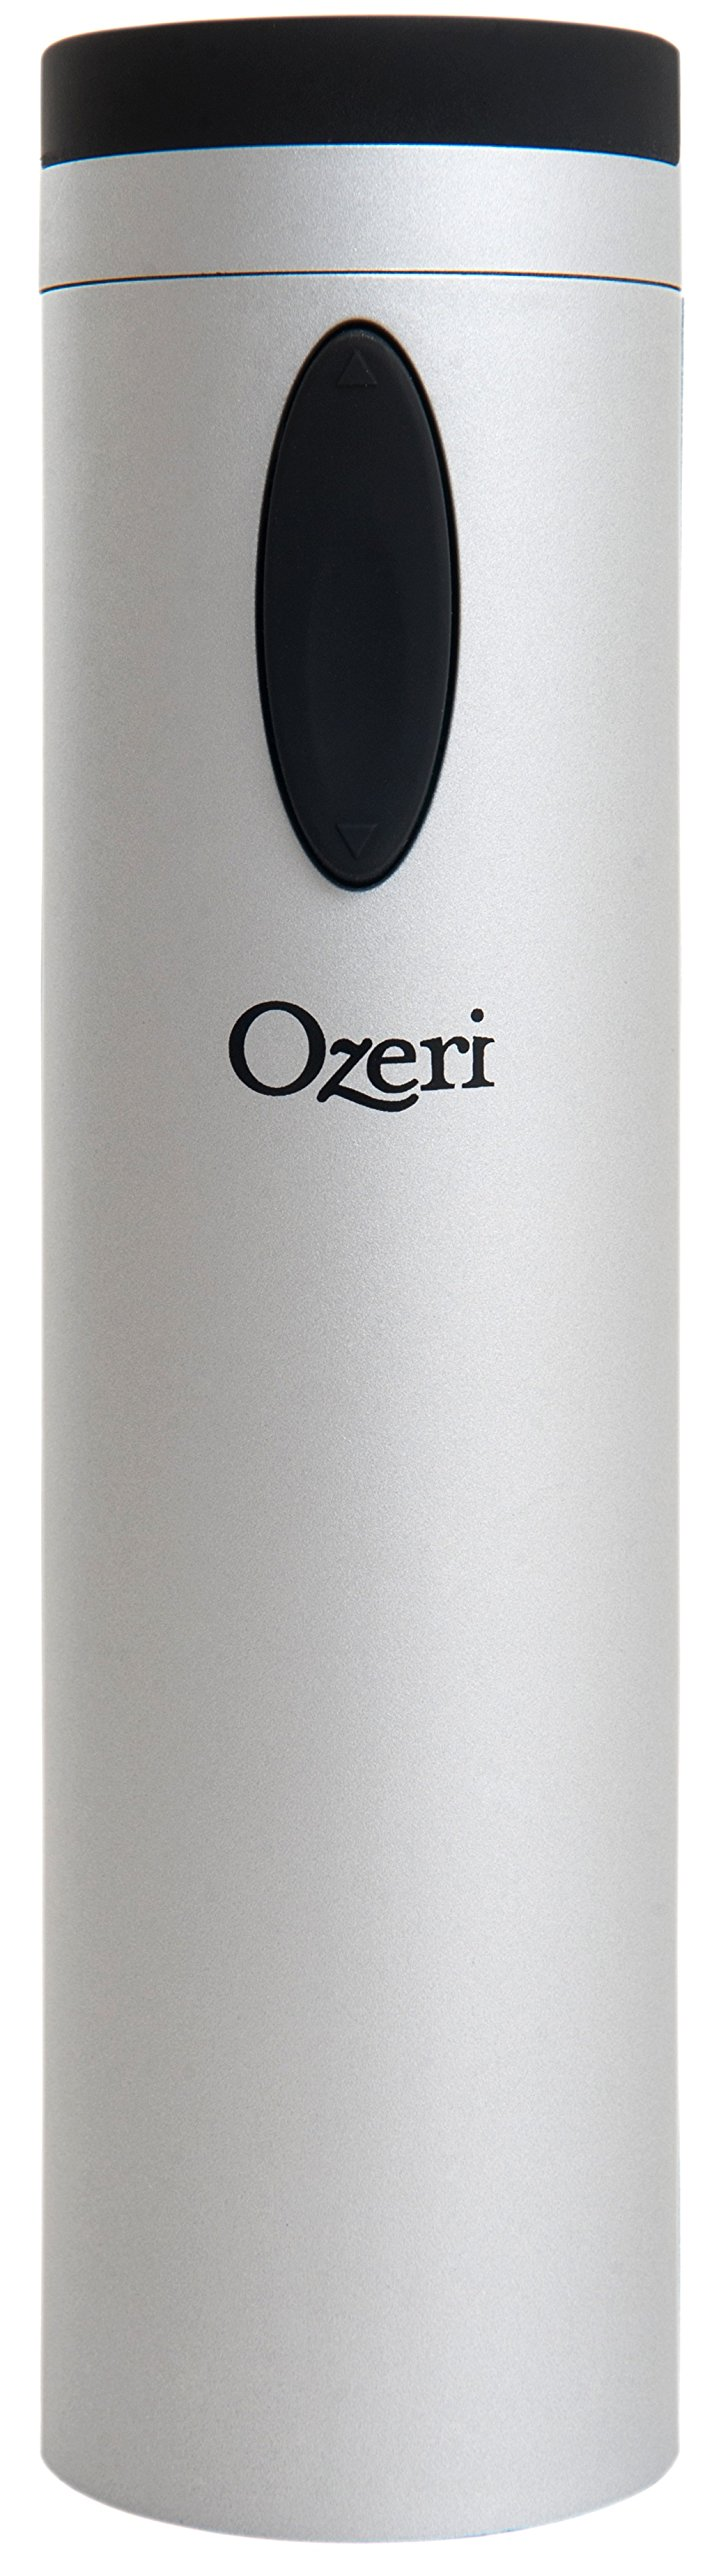 Ozeri OW08A Fascina Electric Wine Bottle Opener and Corkscrew, Silver by Ozeri